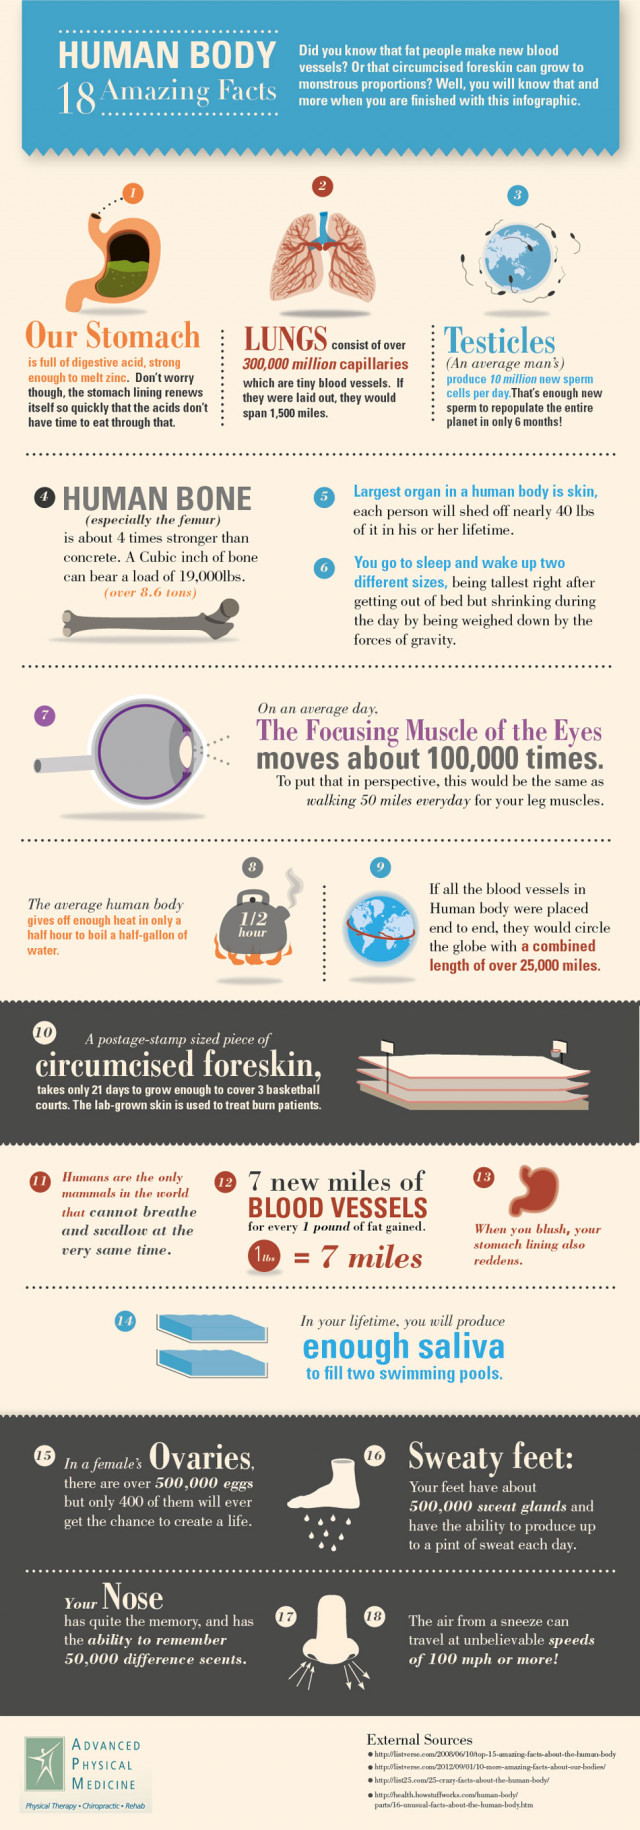 18 Amazing Facts About The Human Body